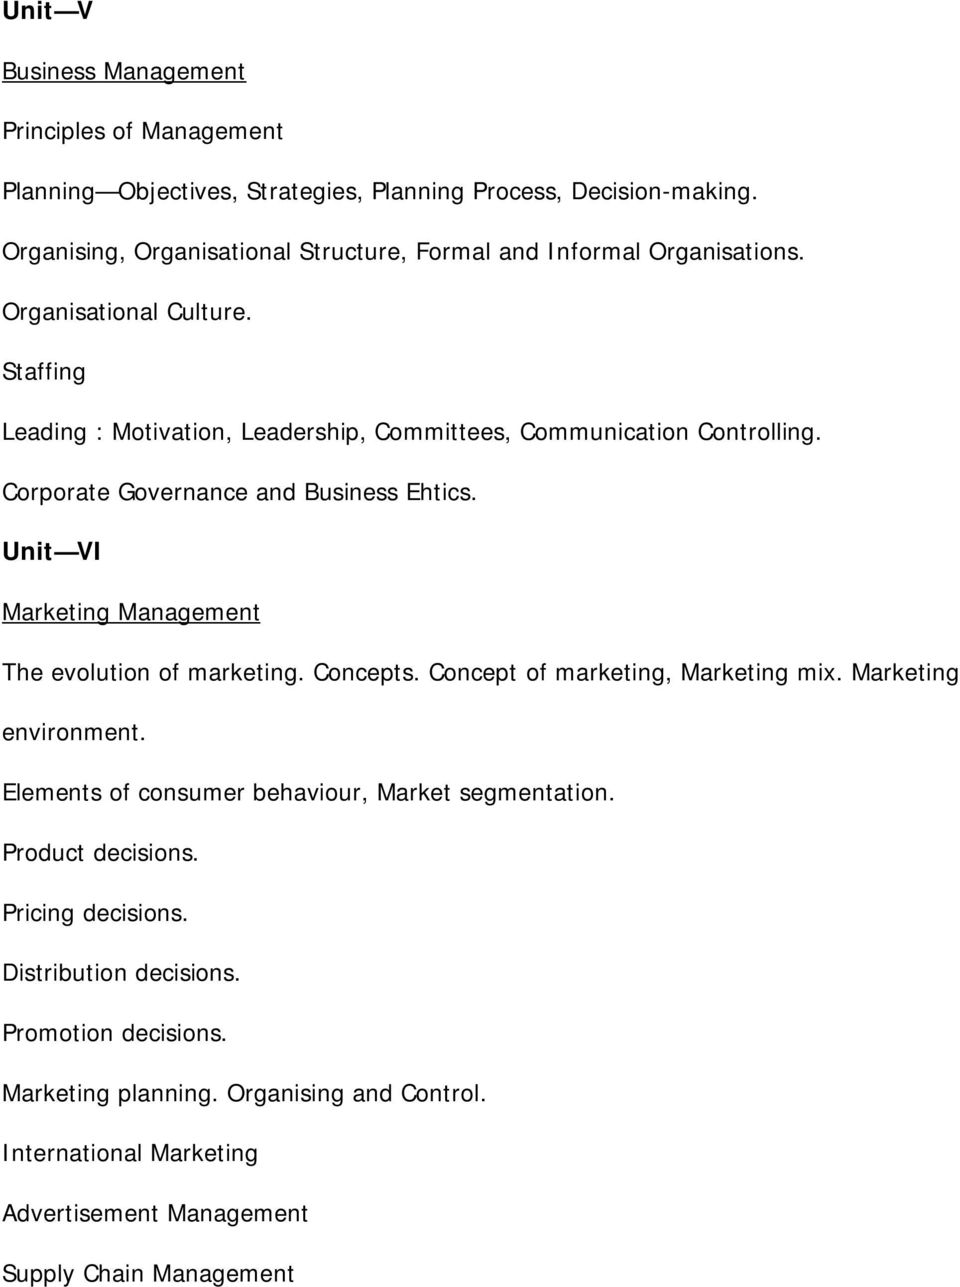 Corporate Governance and Business Ehtics. Unit VI Marketing Management The evolution of marketing. Concepts. Concept of marketing, Marketing mix. Marketing environment.